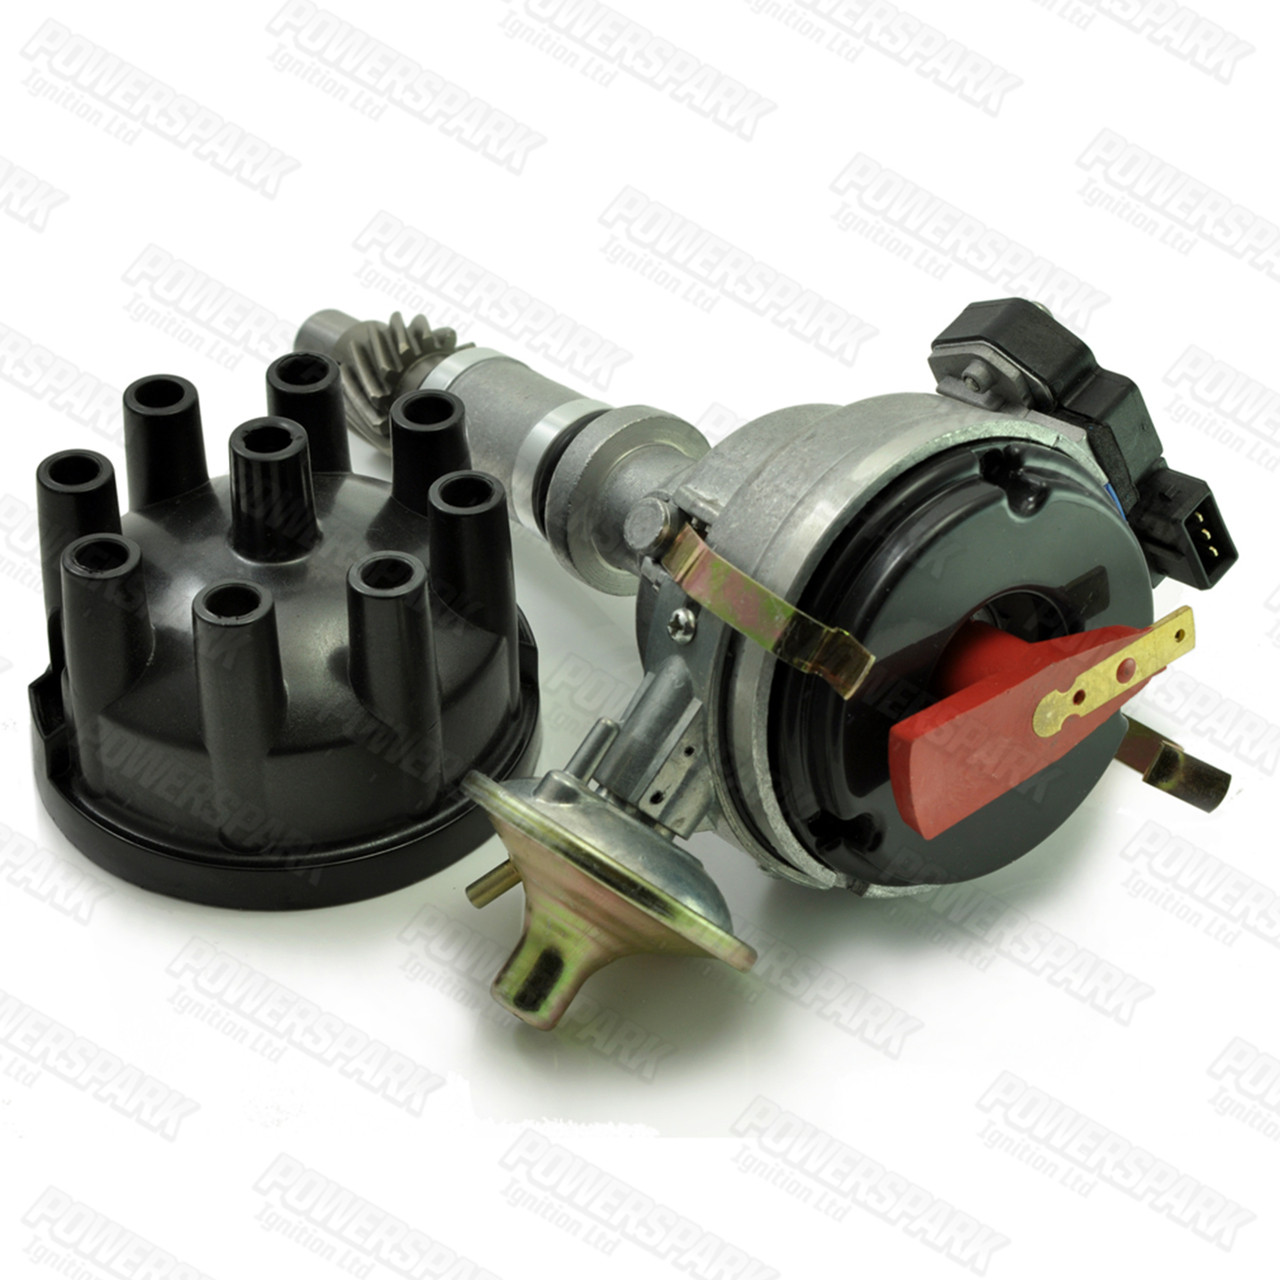 Powerspark Lucas 35D V8 Electronic Distributor for Late Rover V8 with Genuine Lucas Ignition Module